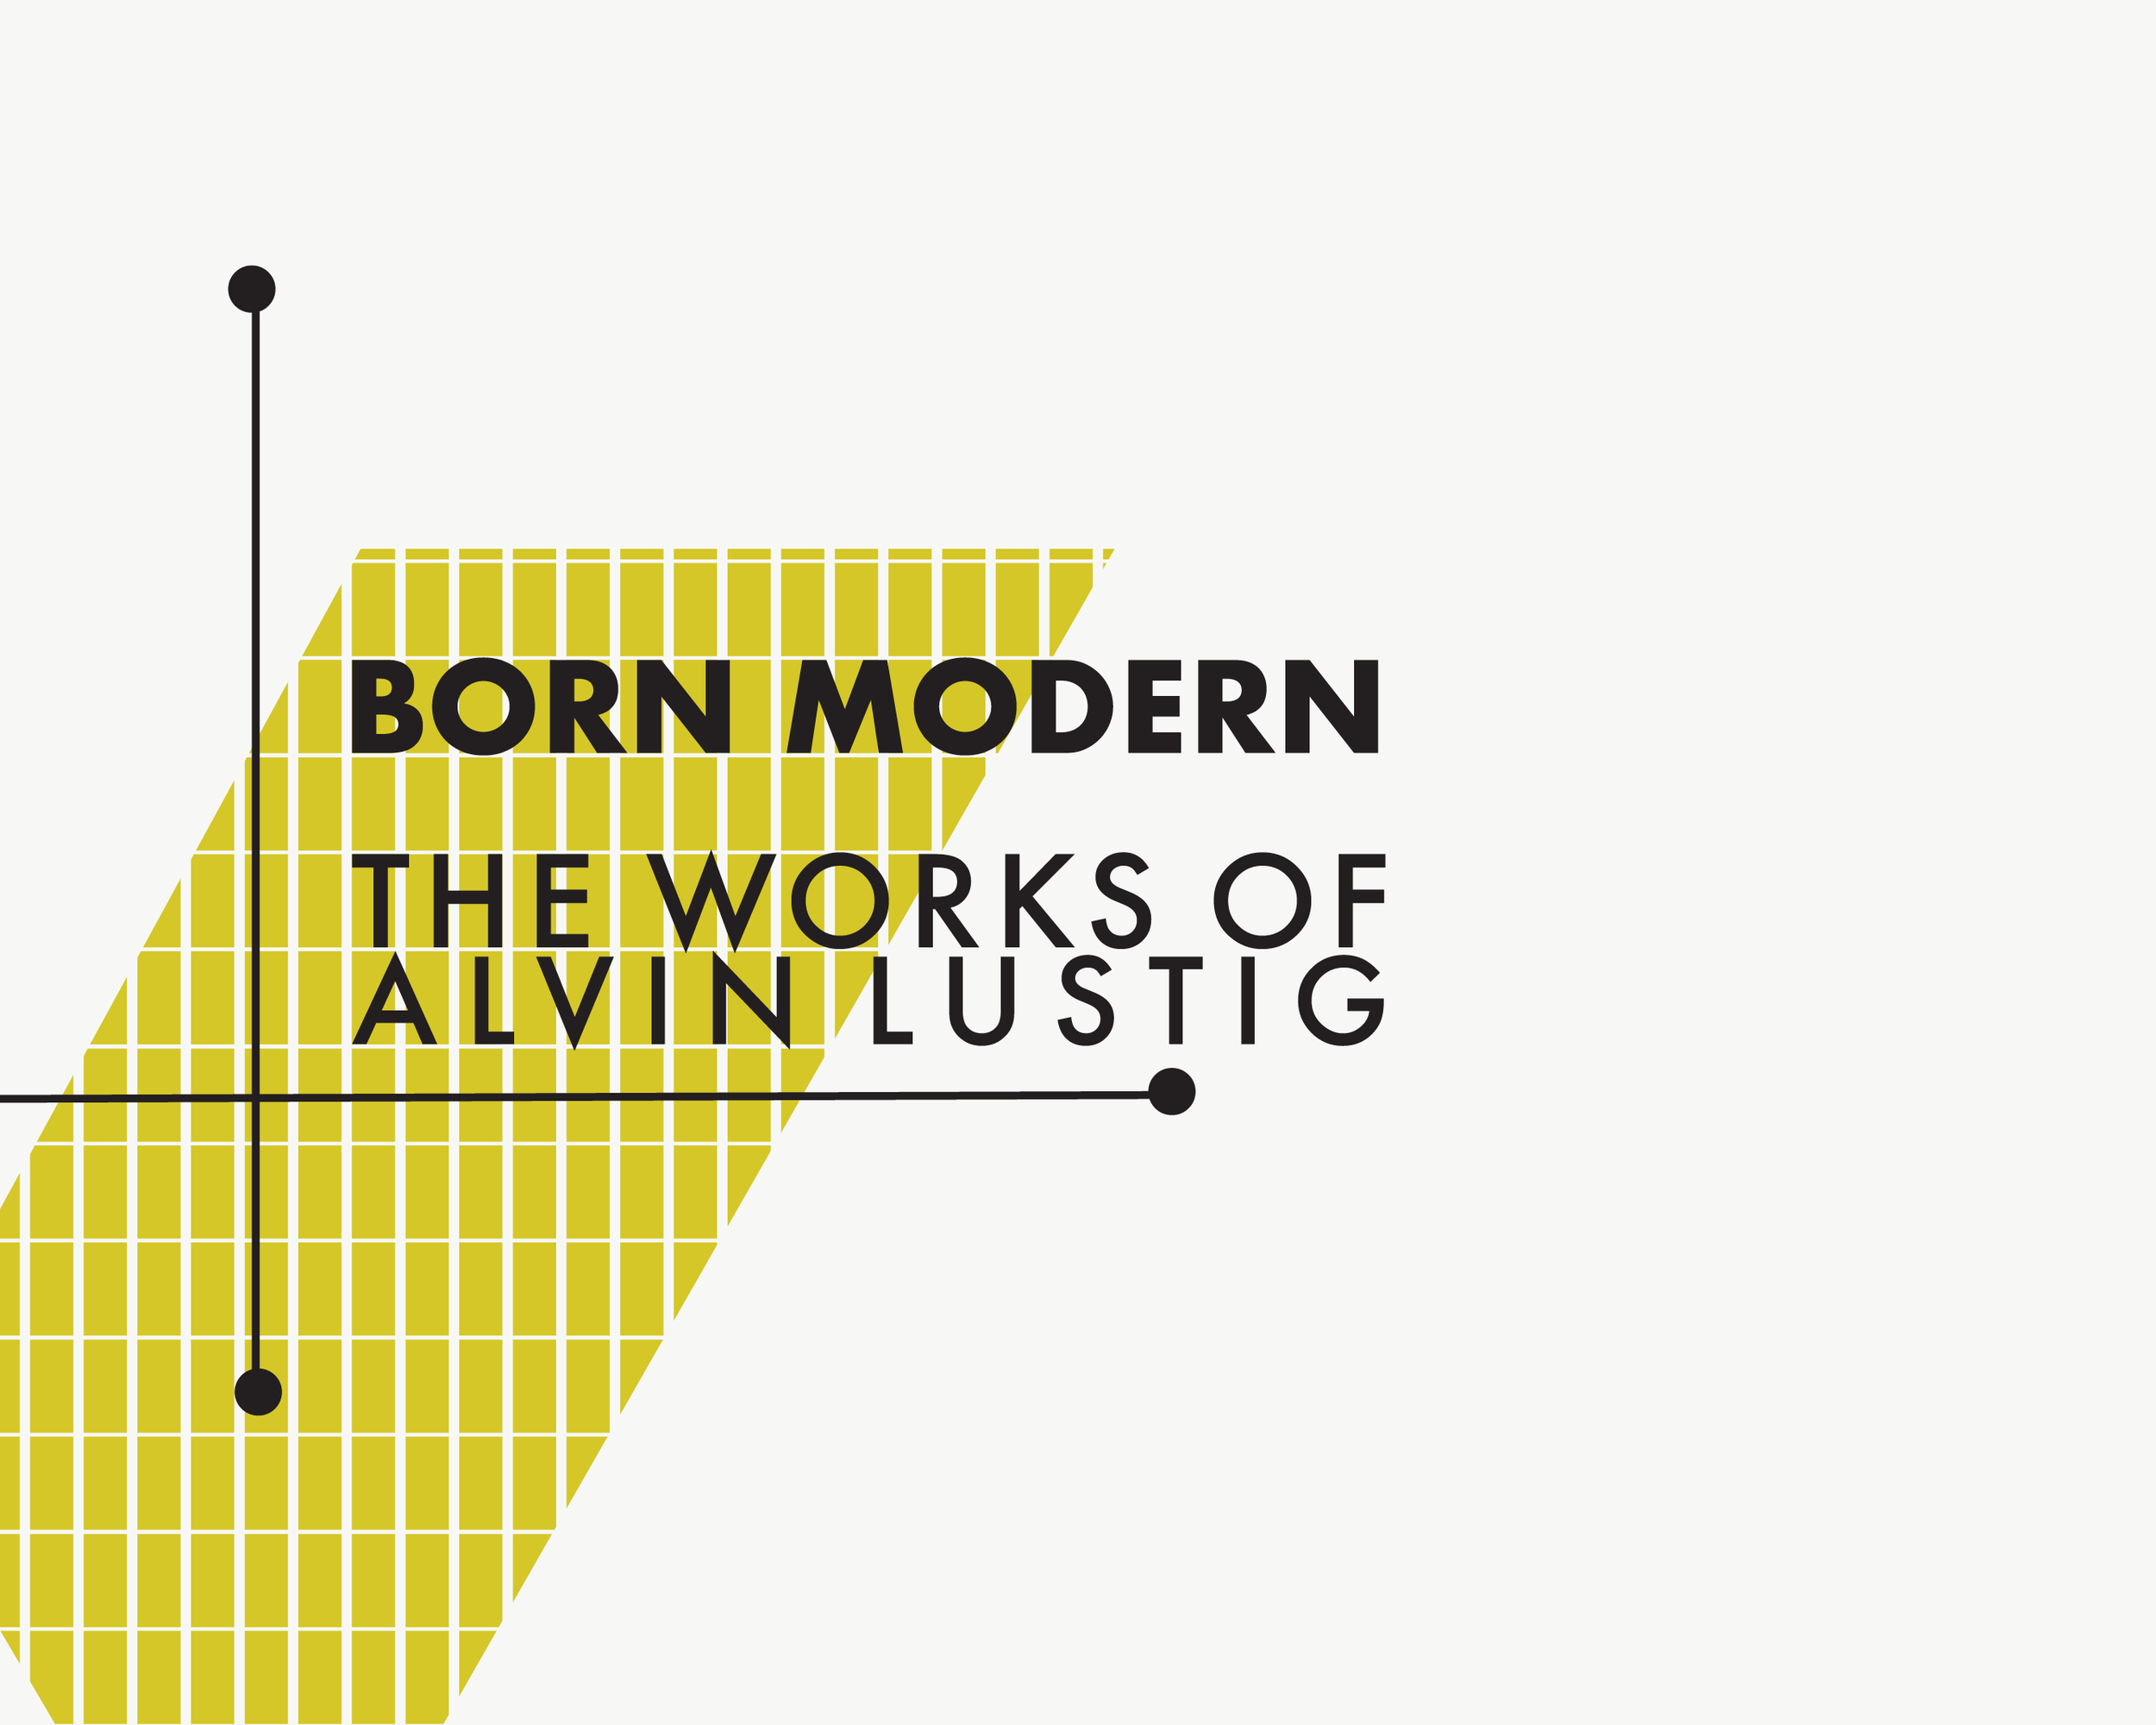 PALM SPRINGS ARCHITECTURE AND DESIGN CENTER| EVENT CAMPAIGN - To kick off Moderism Week, The Palm Springs Architecture and Design Center is featuring works by Alvin Lustig. This week-long event showcases Mid-Century Modernist artists and designers in all of the galleries in town.